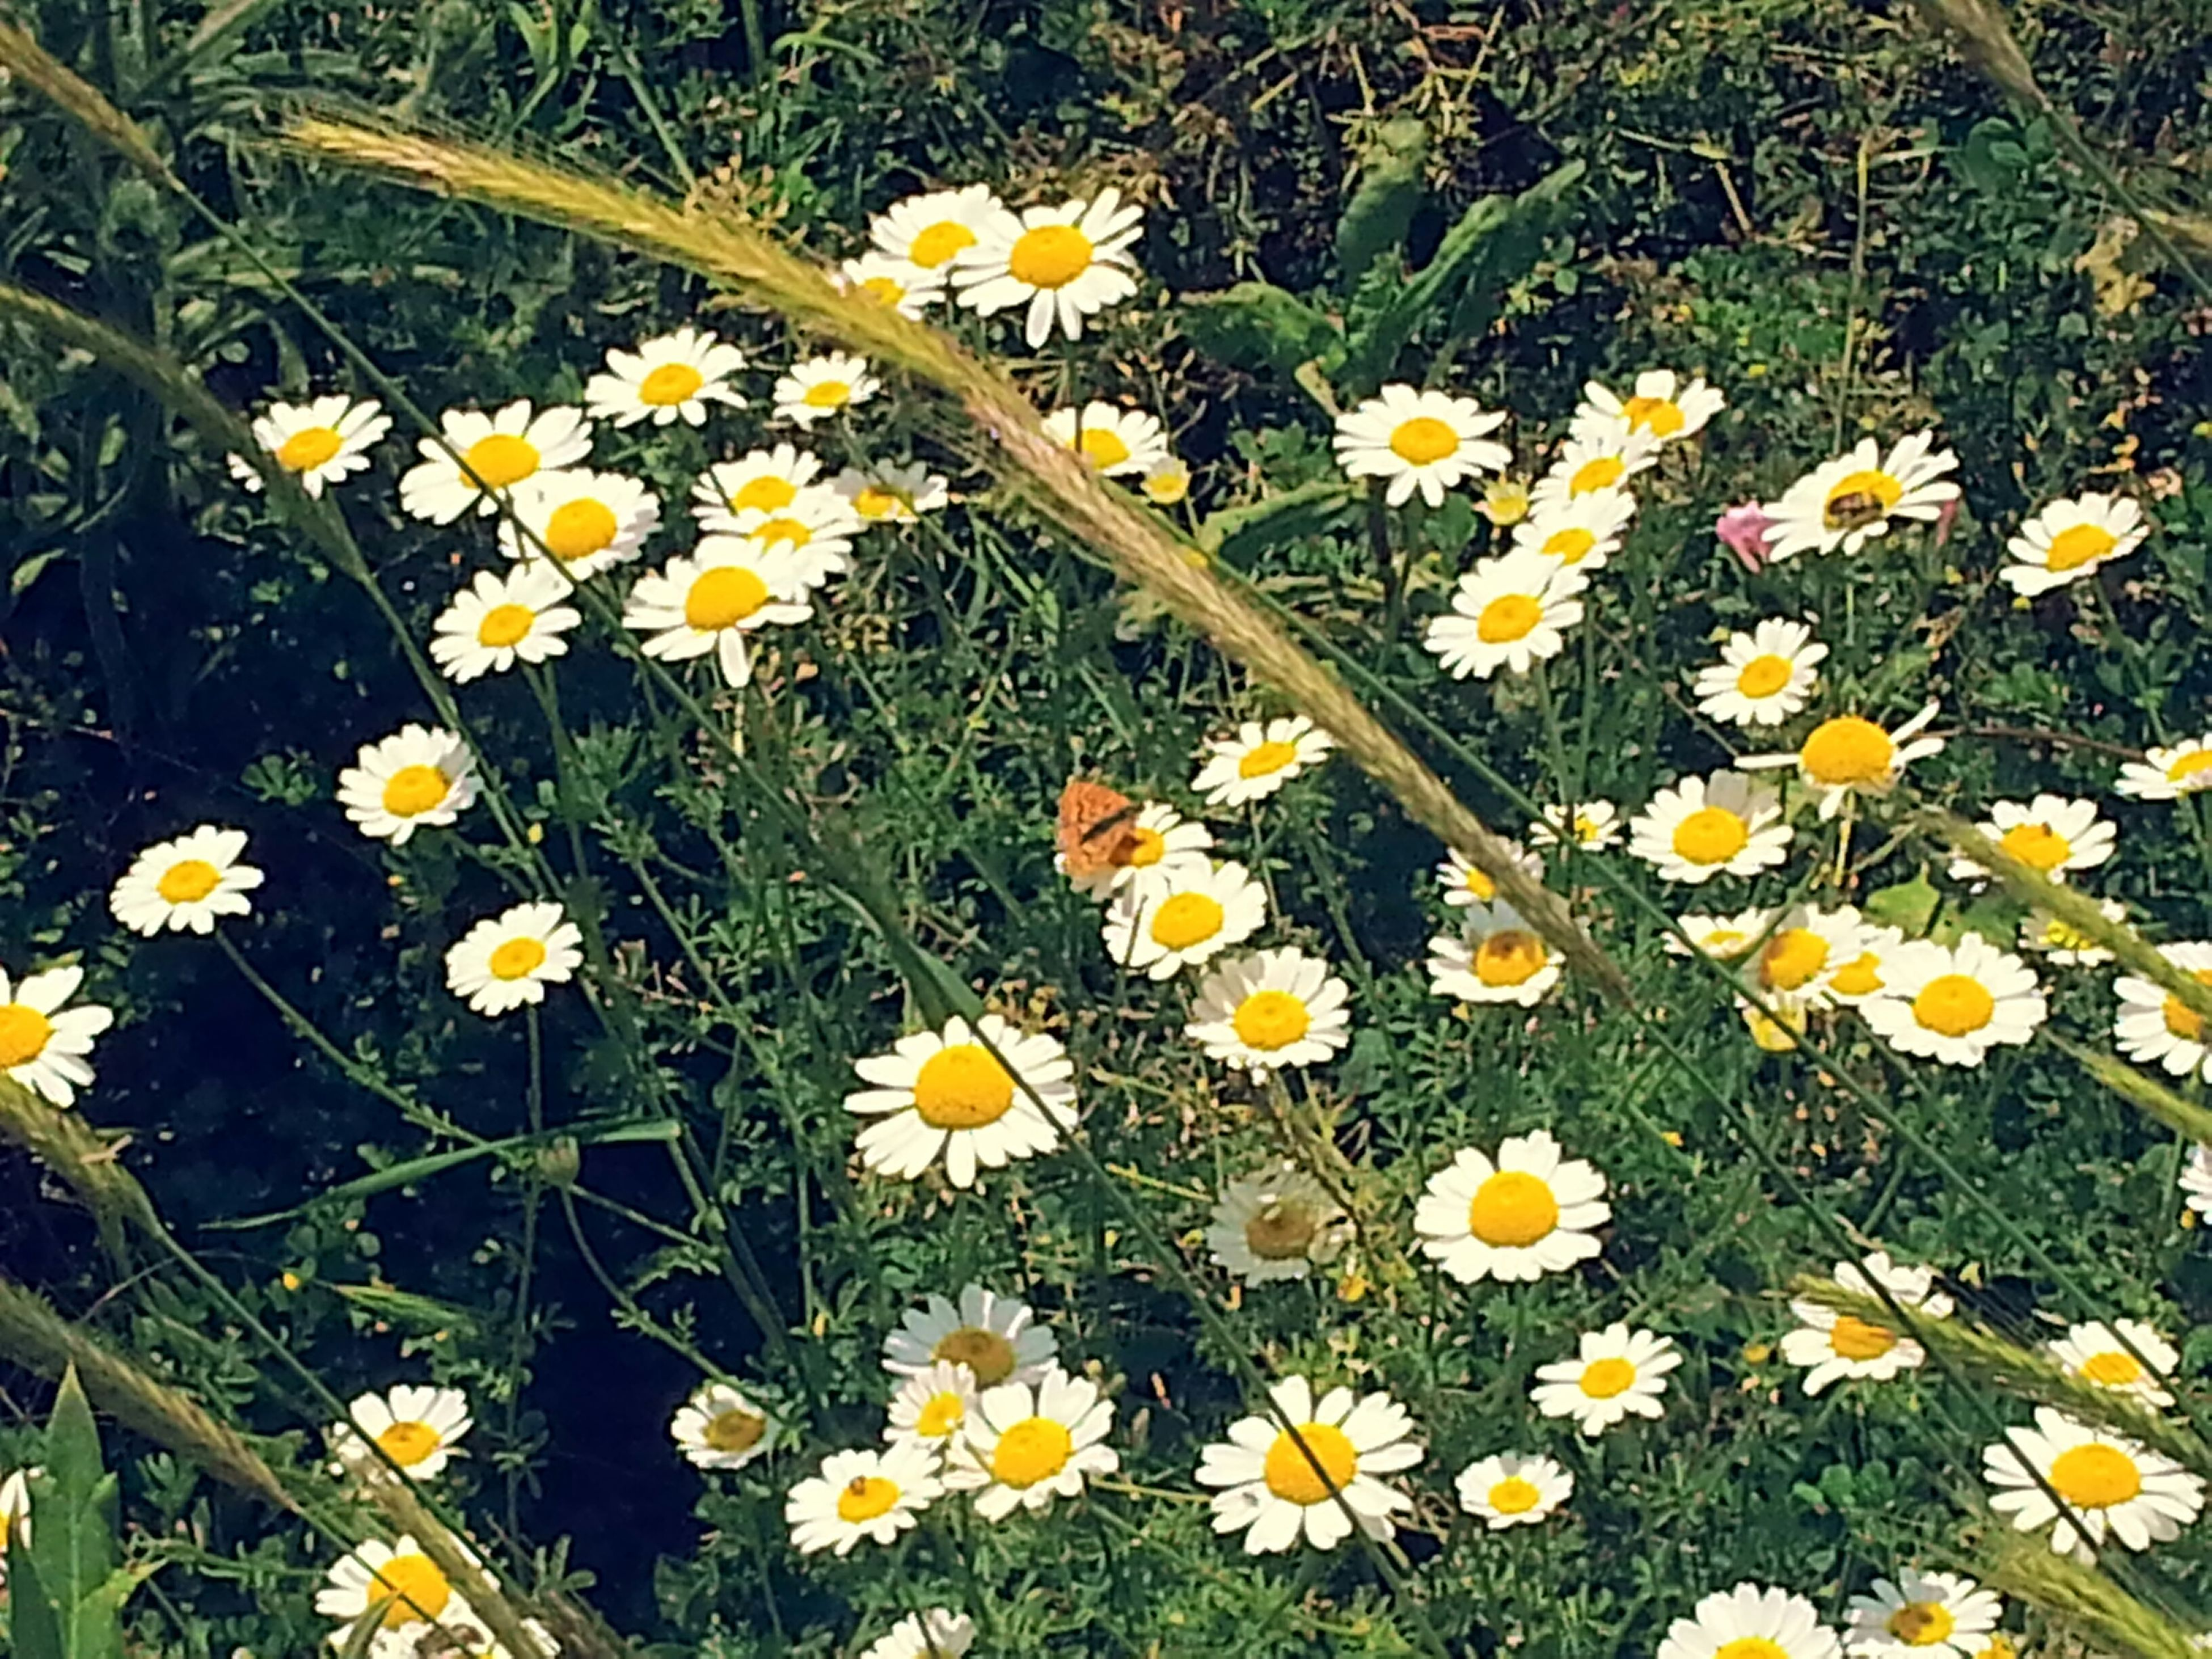 flower, freshness, growth, fragility, petal, yellow, daisy, beauty in nature, high angle view, plant, field, nature, blooming, flower head, grass, white color, in bloom, wildflower, blossom, stem